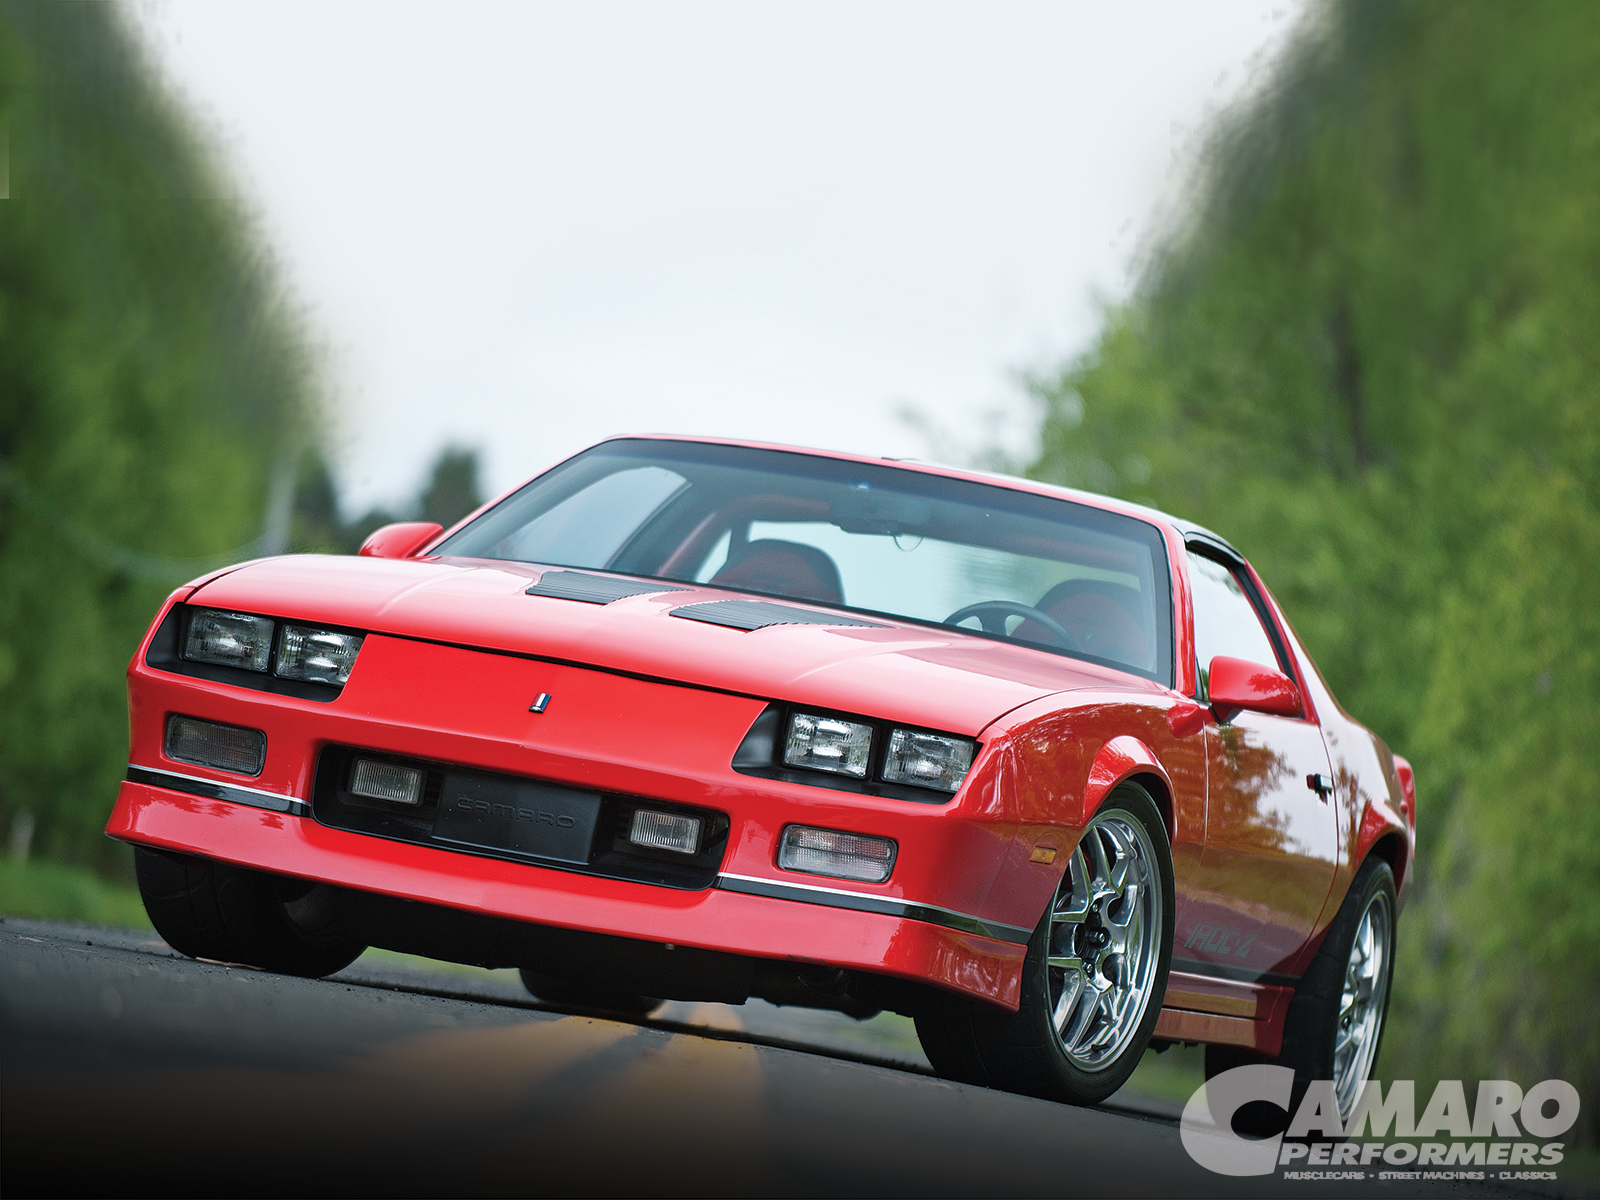 1986 chevy camaro z28 iroc z front angle dust runners. Black Bedroom Furniture Sets. Home Design Ideas